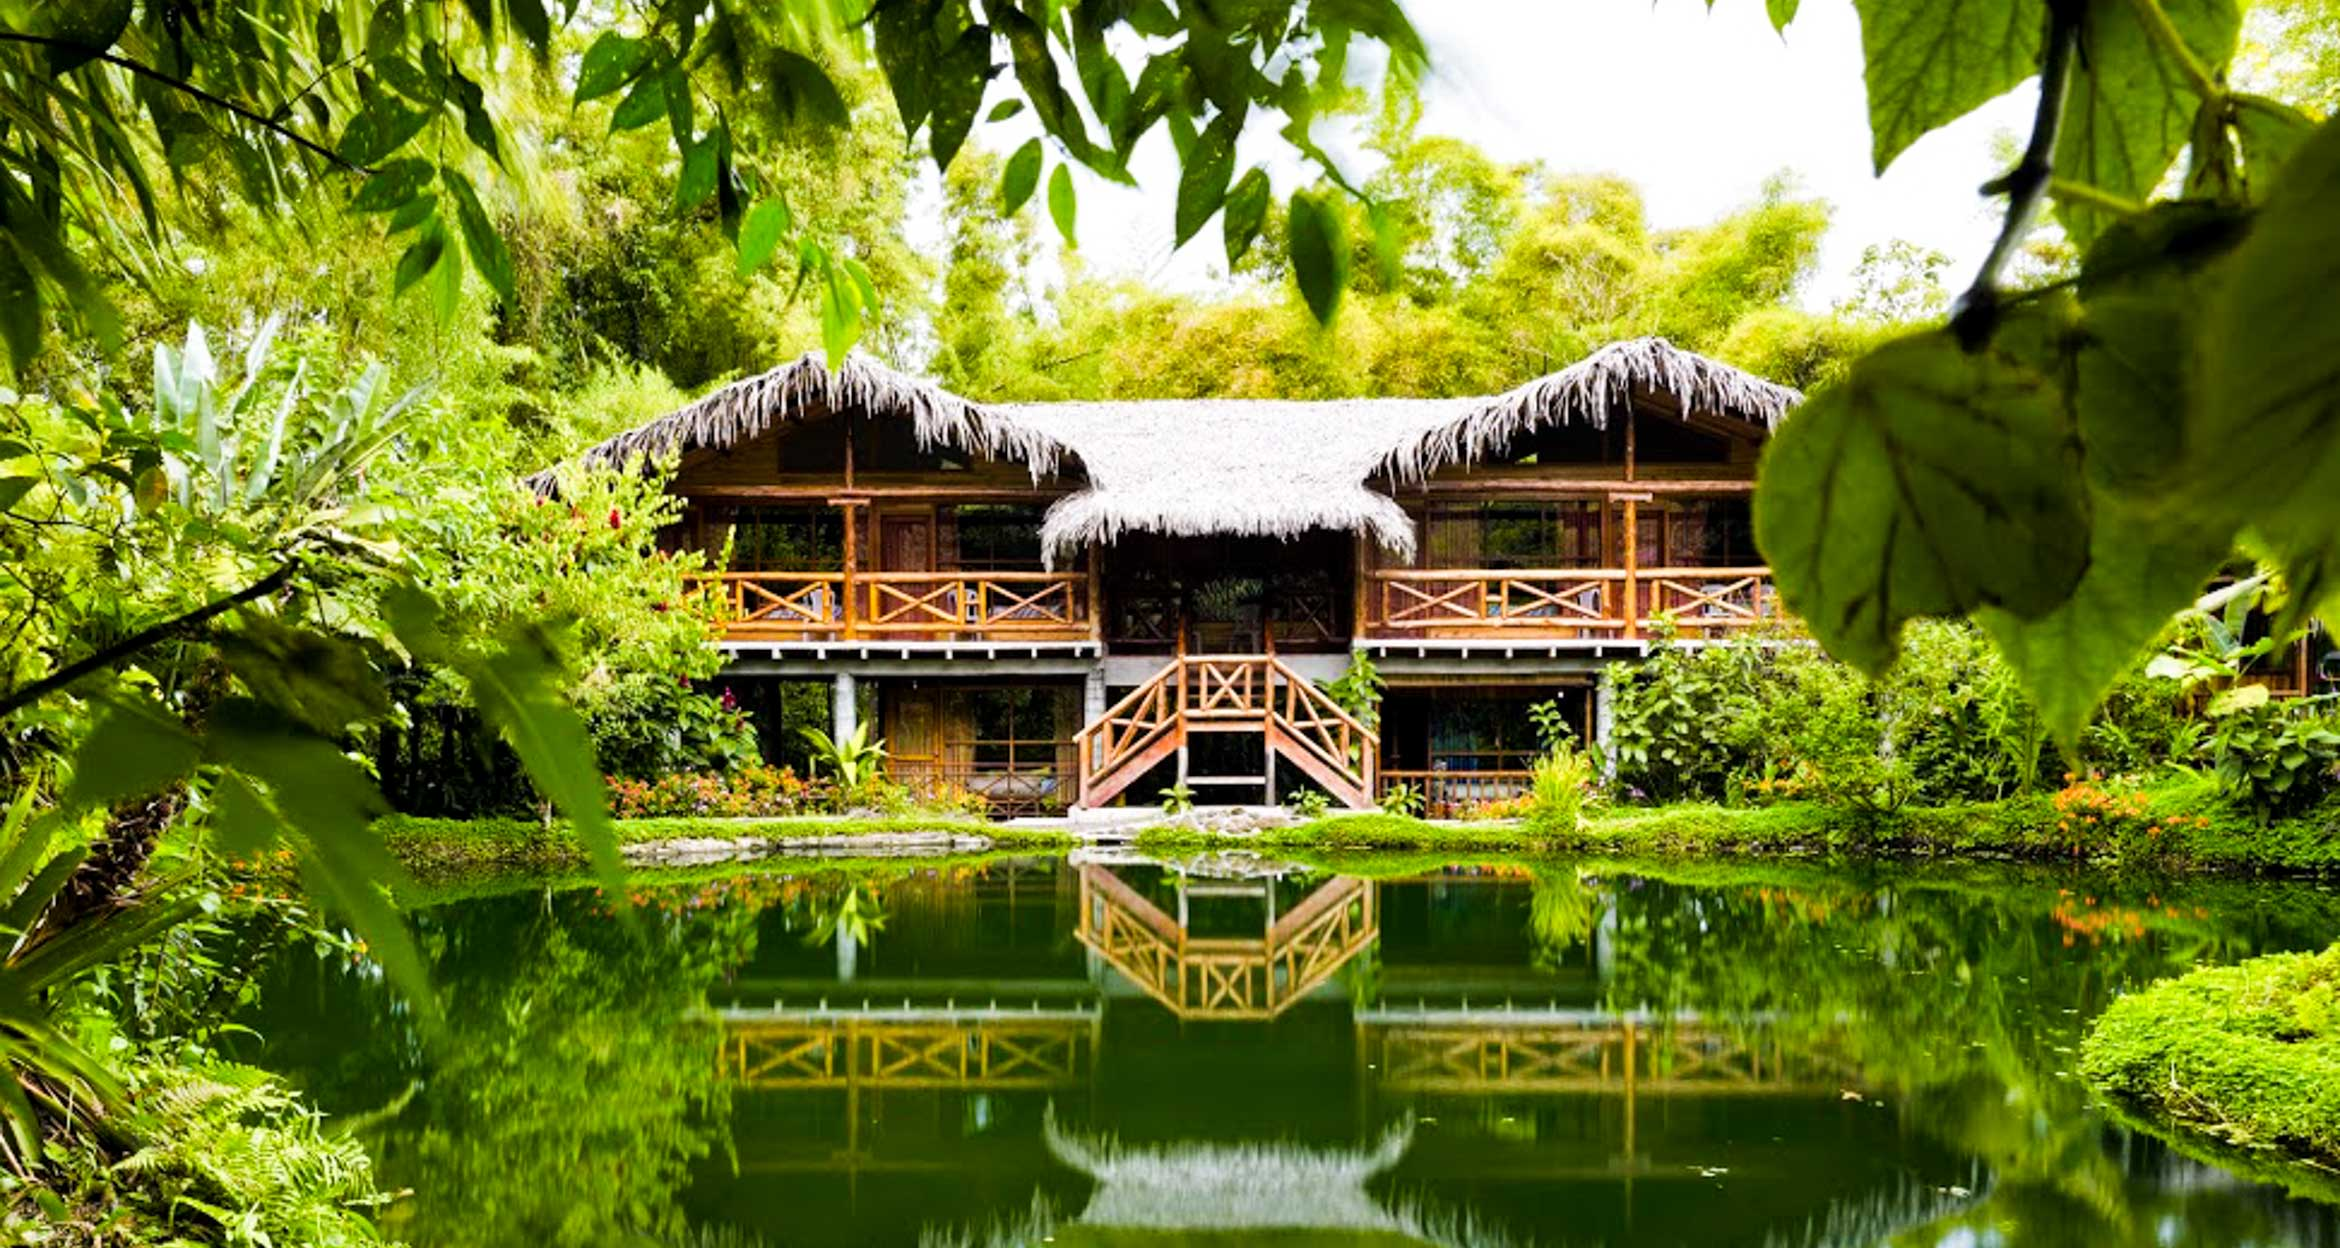 Lodge next to water in Amazon jungle